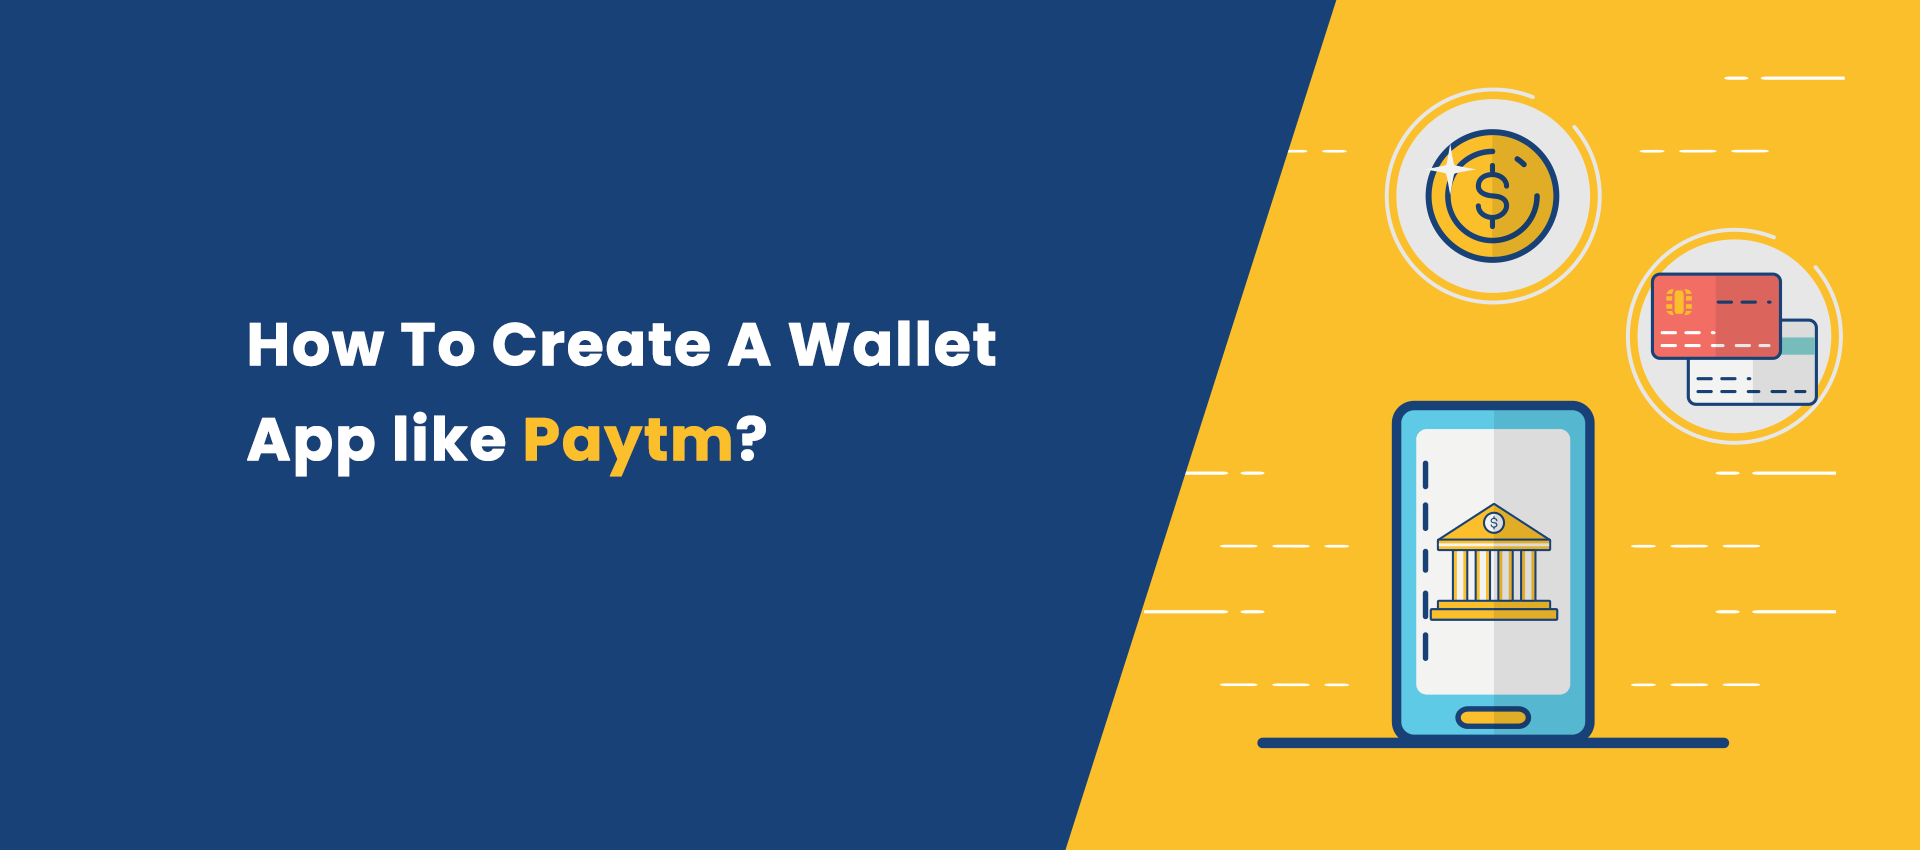 How To Create a Mobile Wallet App like Paytm